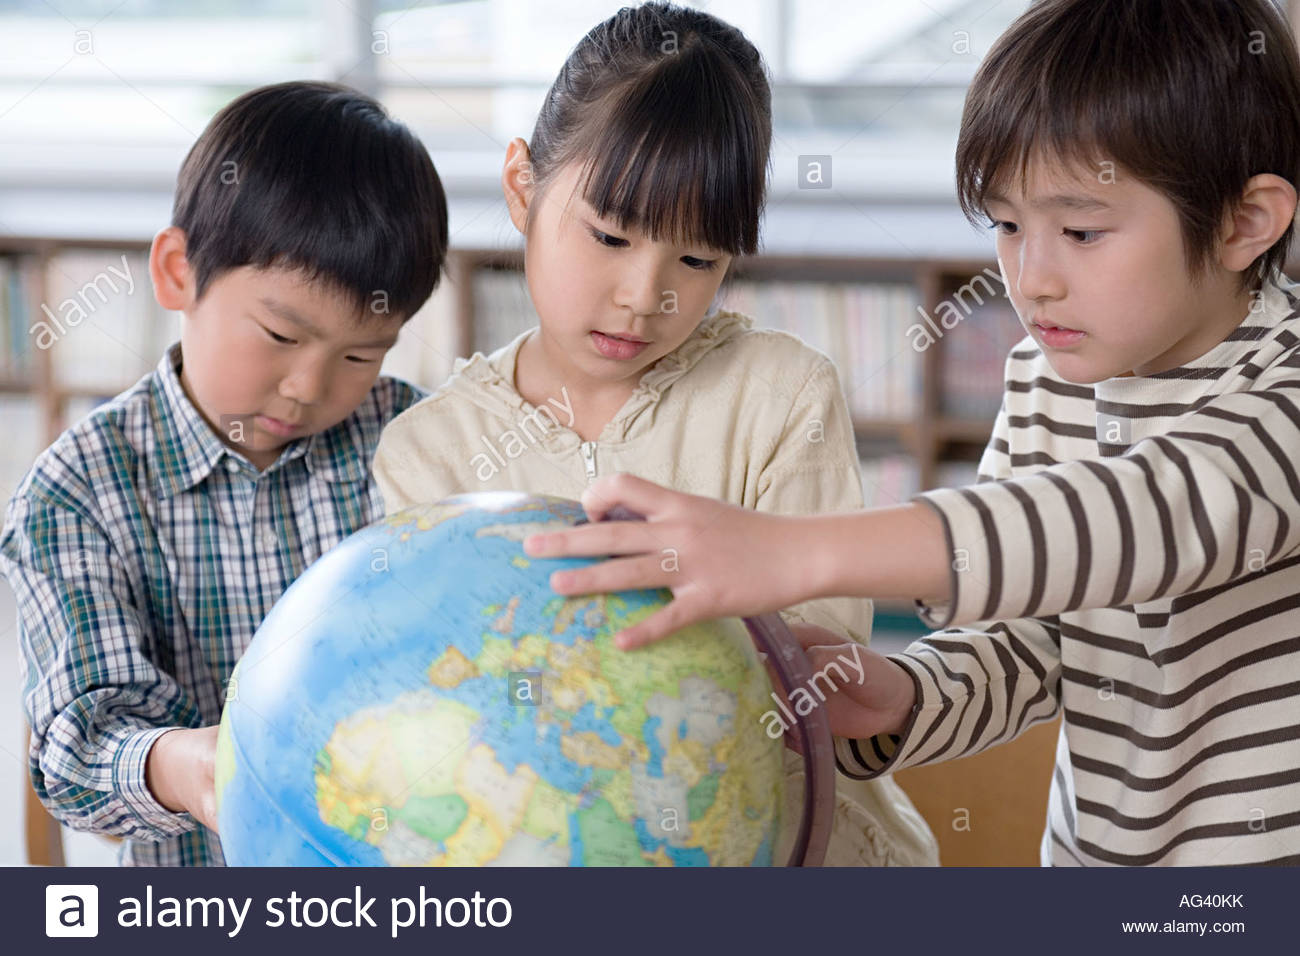 Children looking at a globe - Stock Image